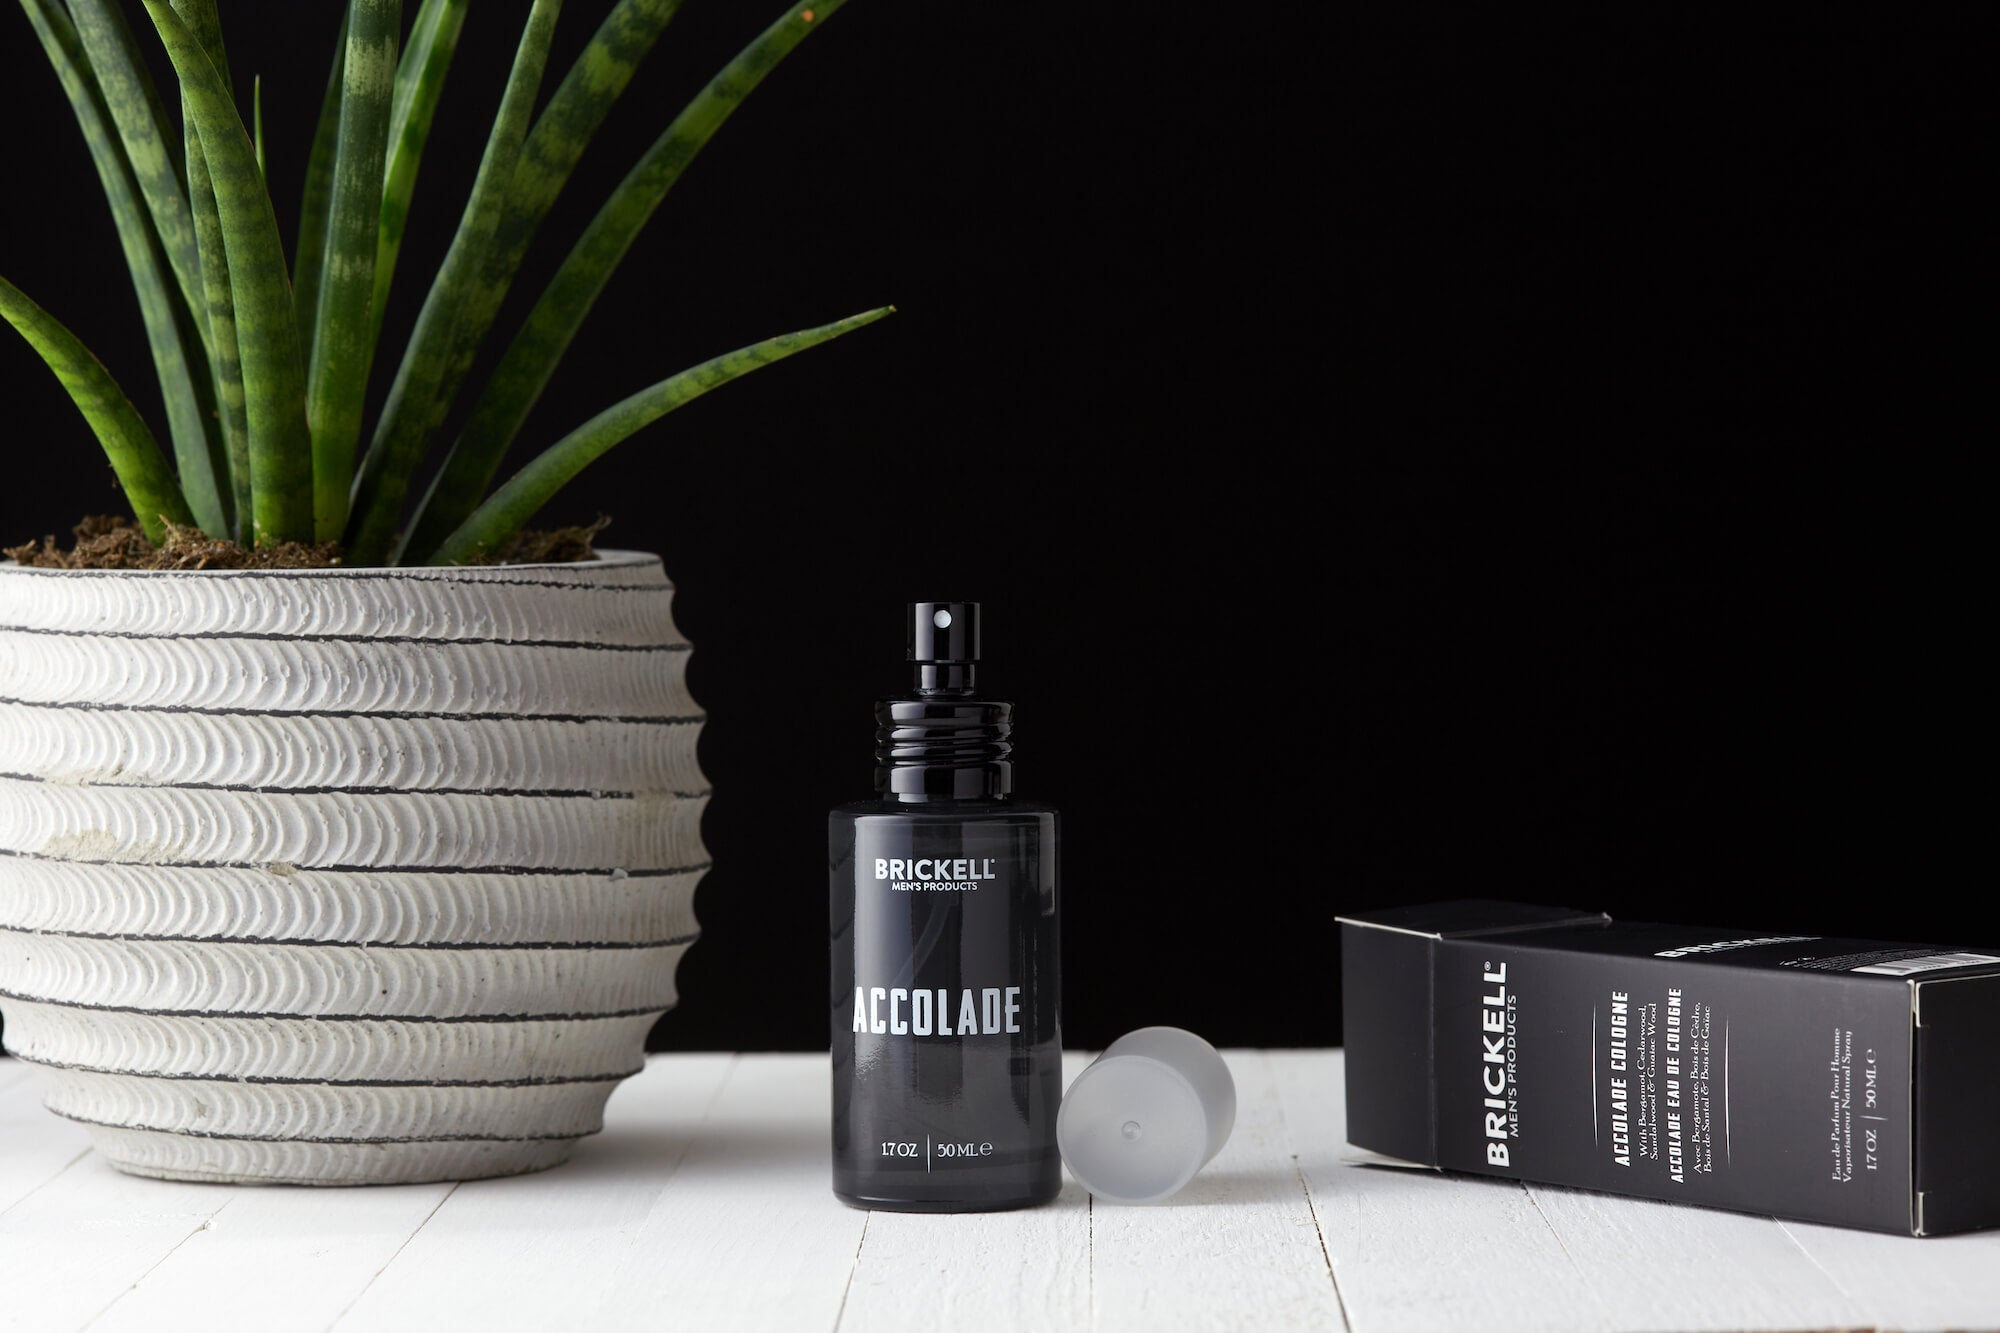 Accolade cologne for men